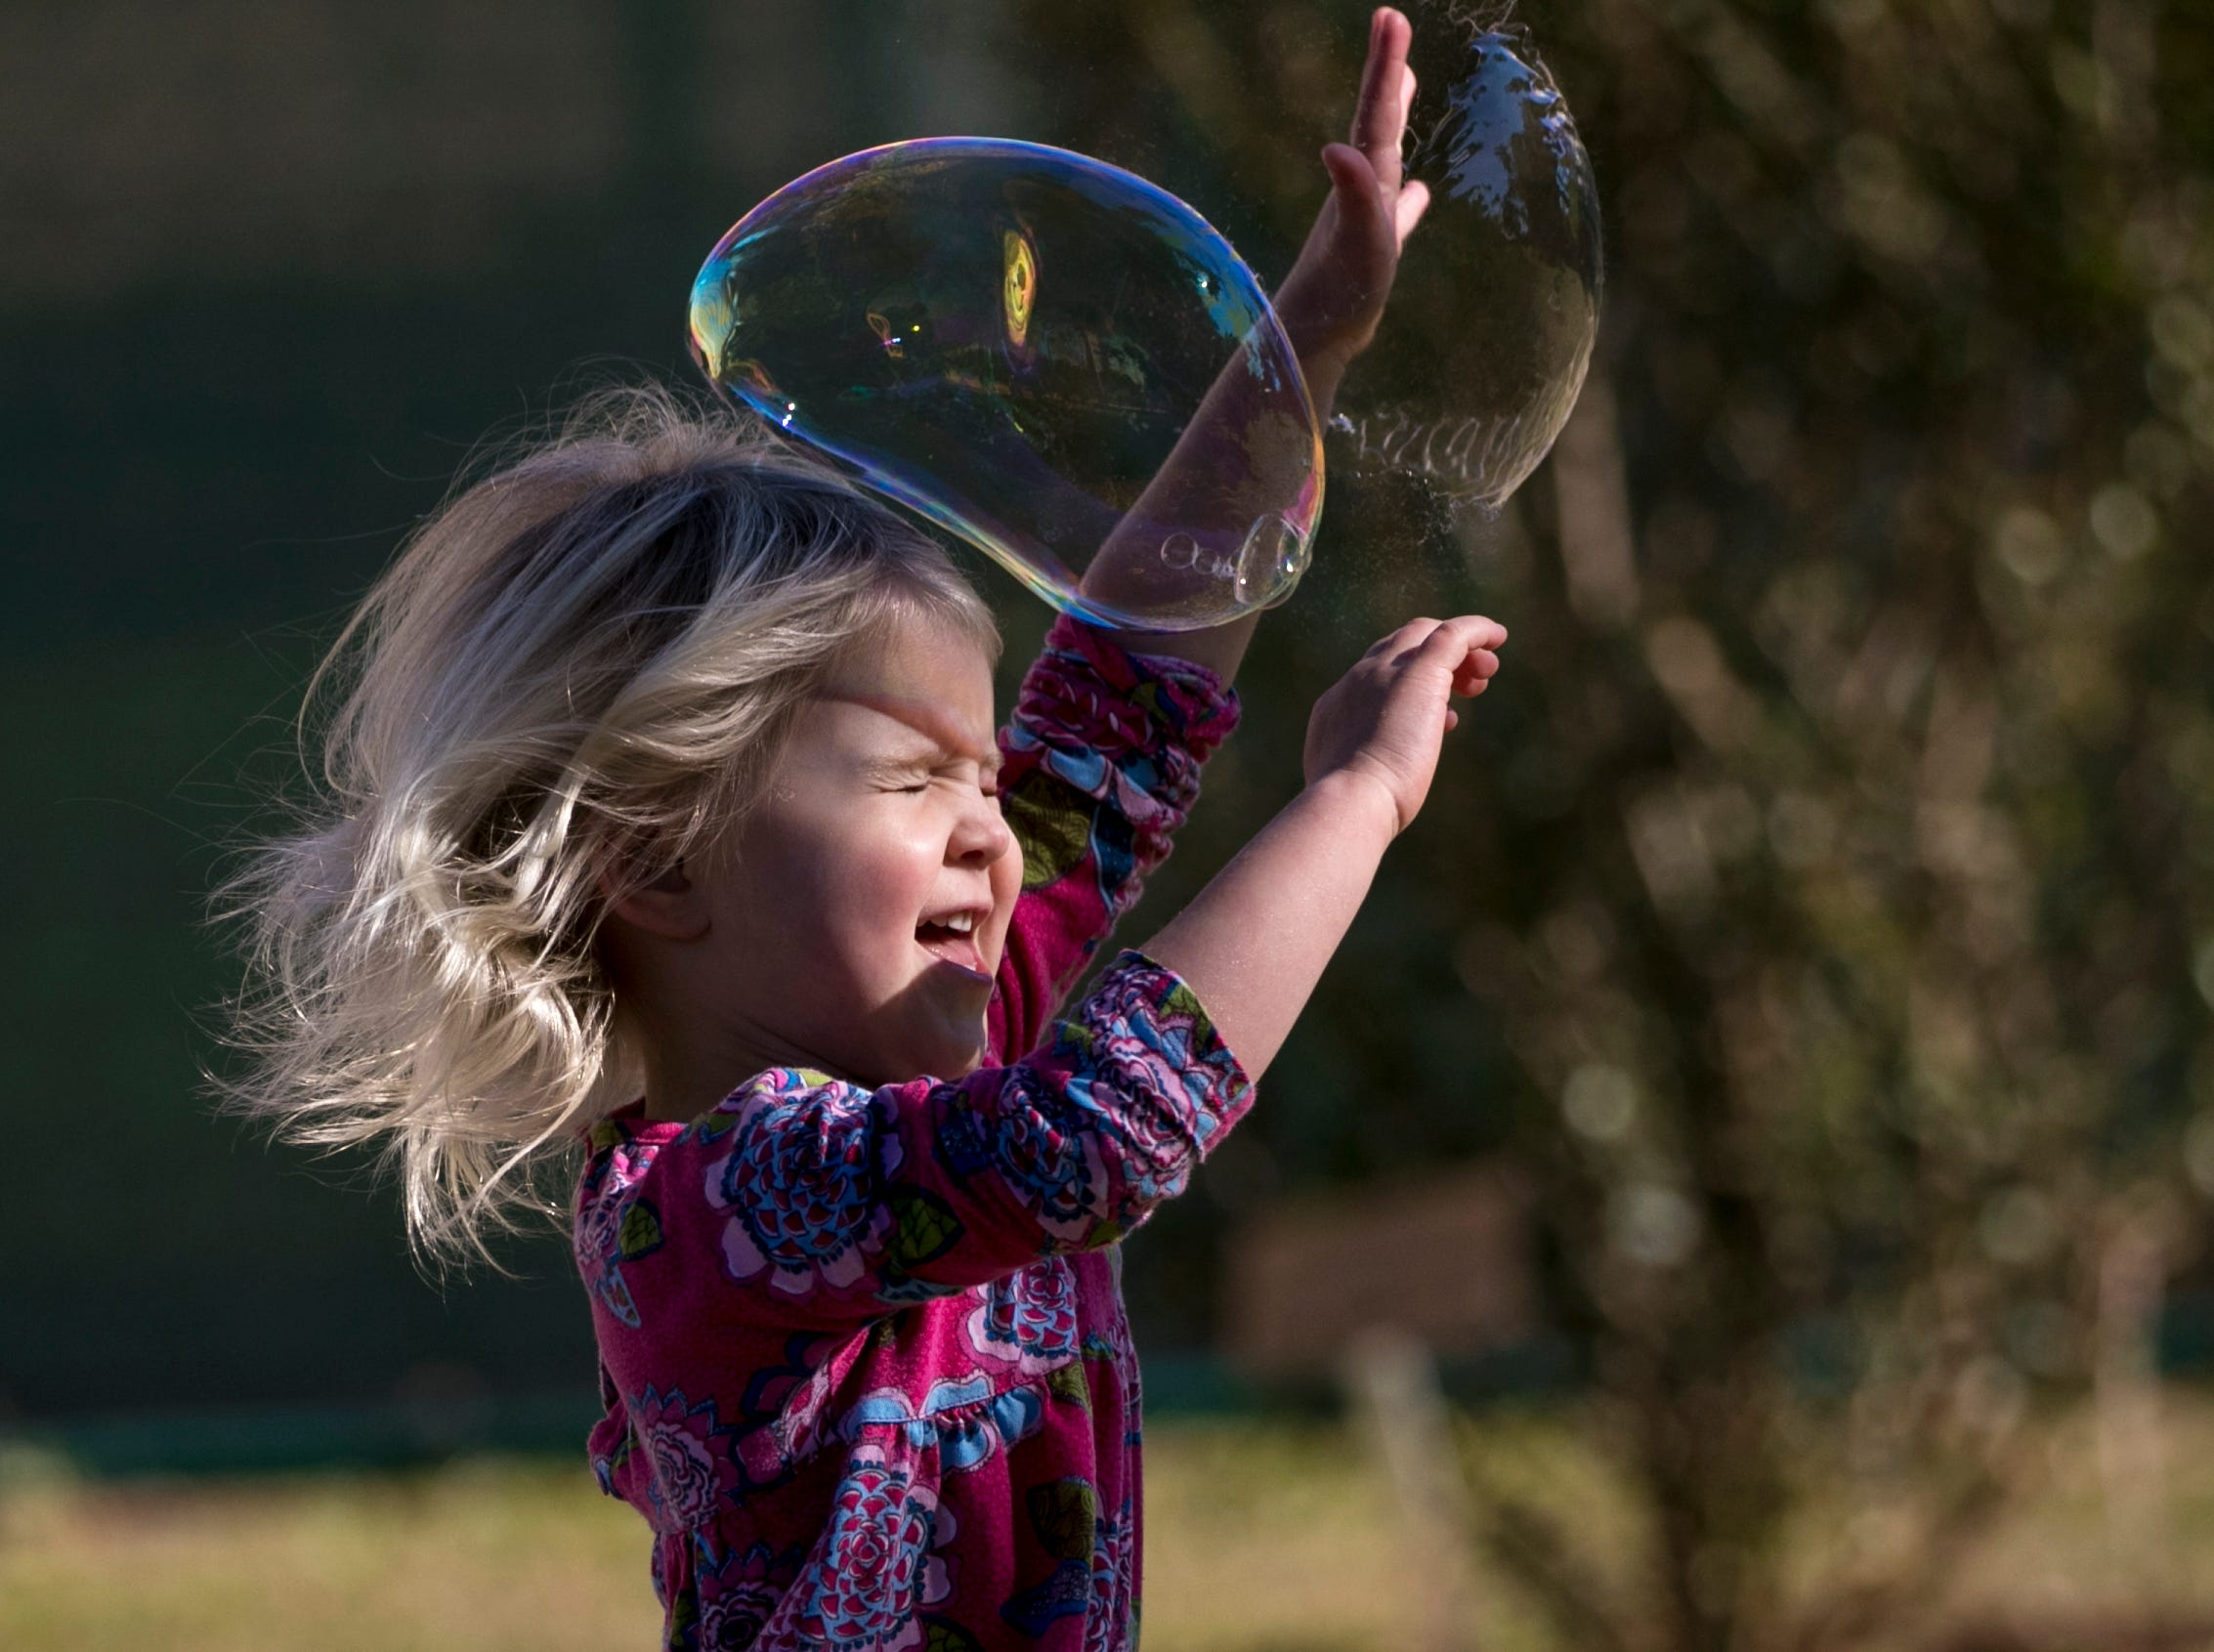 Stella Curry, 3, has fun with bubbles during the monthly Emerging Inventors program on Thursday, January 17, 2019, at the Edison & Ford Winter Estates in Fort Myers. This month's program was called Bouncing Bubbles. The next program, which is for children 5 and younger, is February 21 at 9:30 am, and is called is LEGO Art and Engineering.